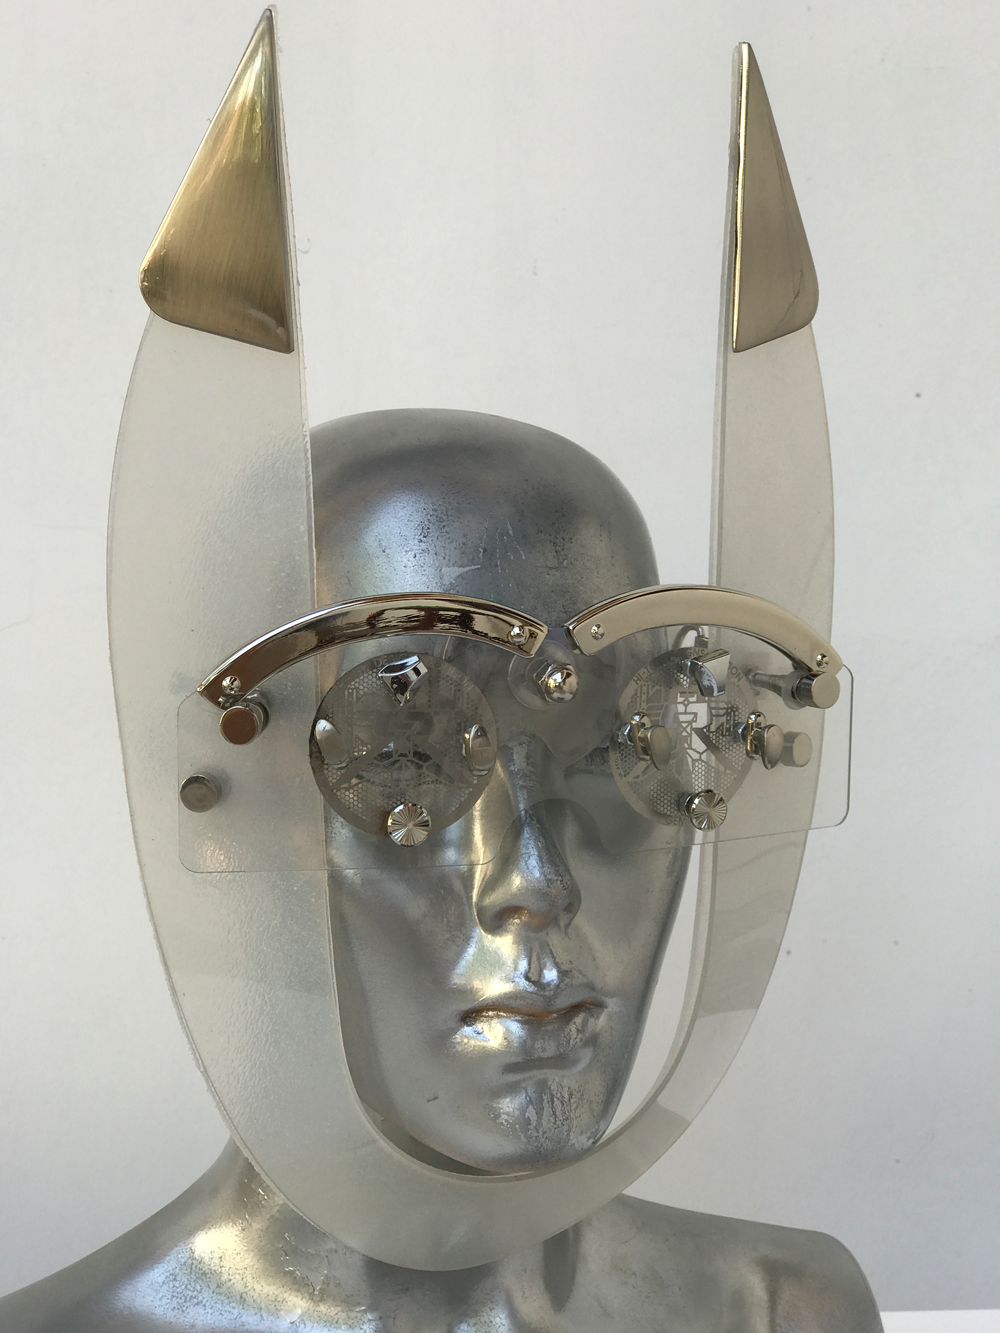 mask with horns perforated metal ocular lens metal components, styling video, Burning Man